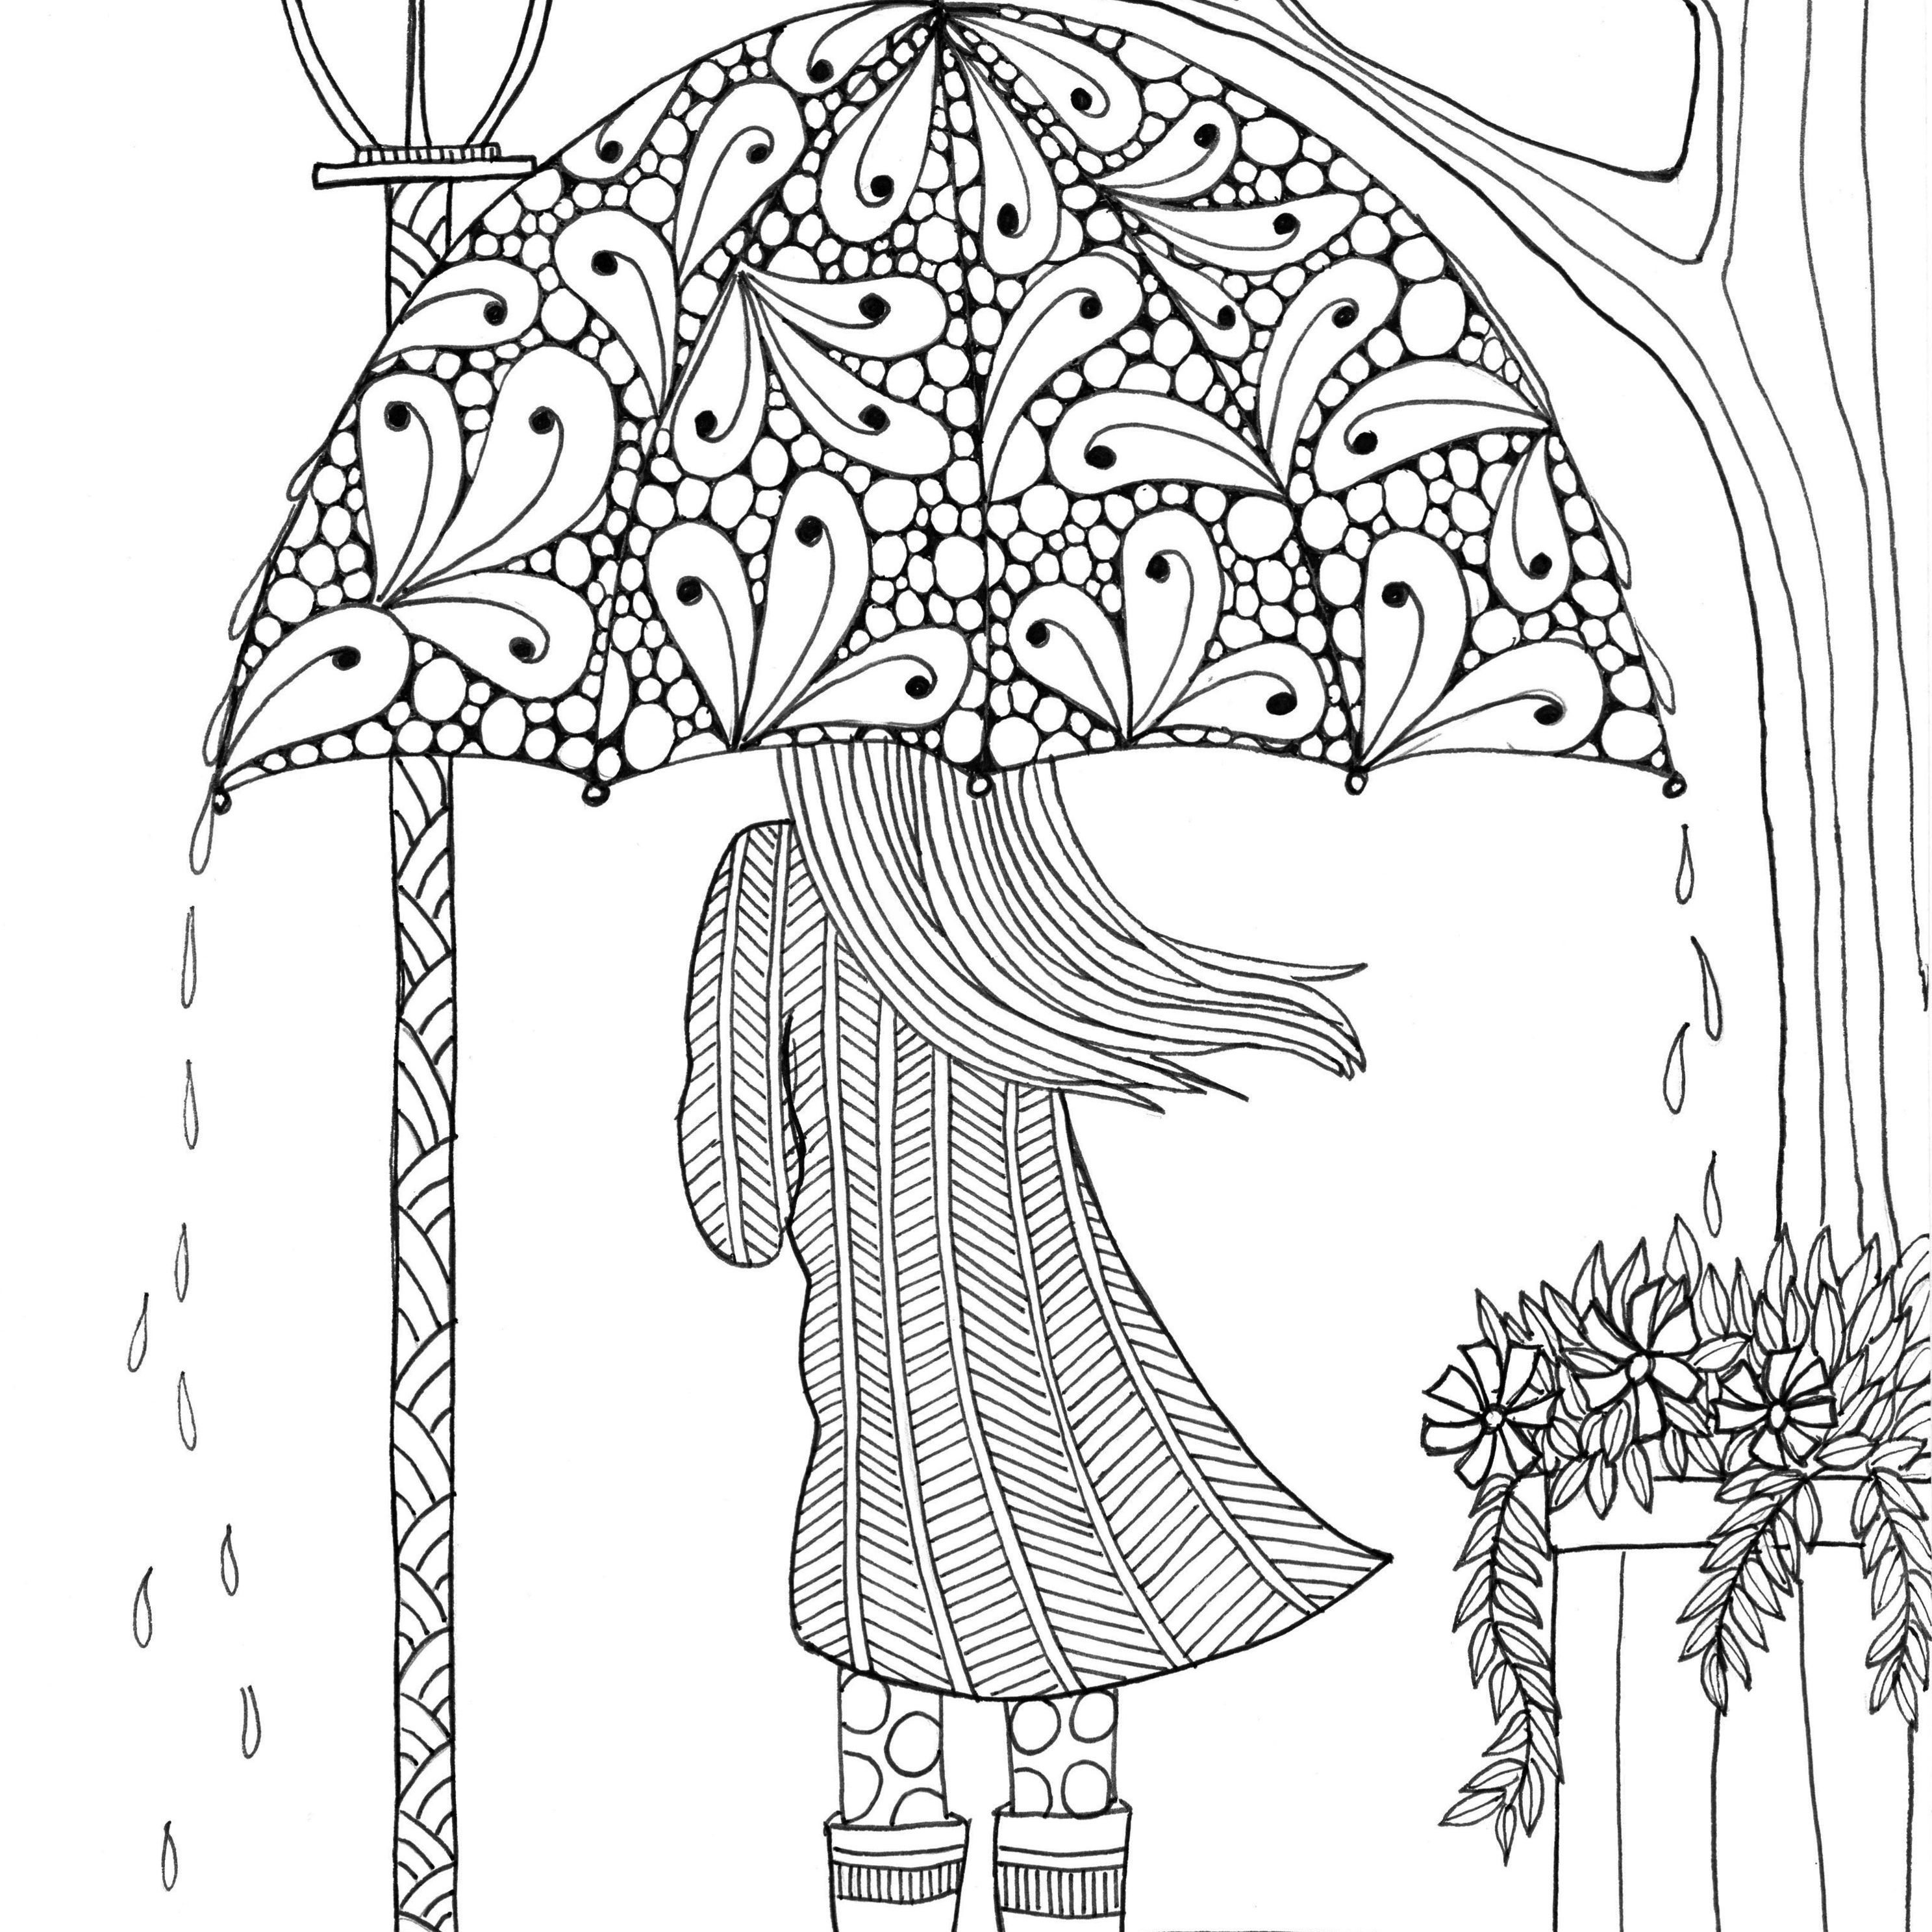 Printable Coloring Pages For Girls Adult Coloring Pages Kind Words Printable 13 M 15 For Girls Unique